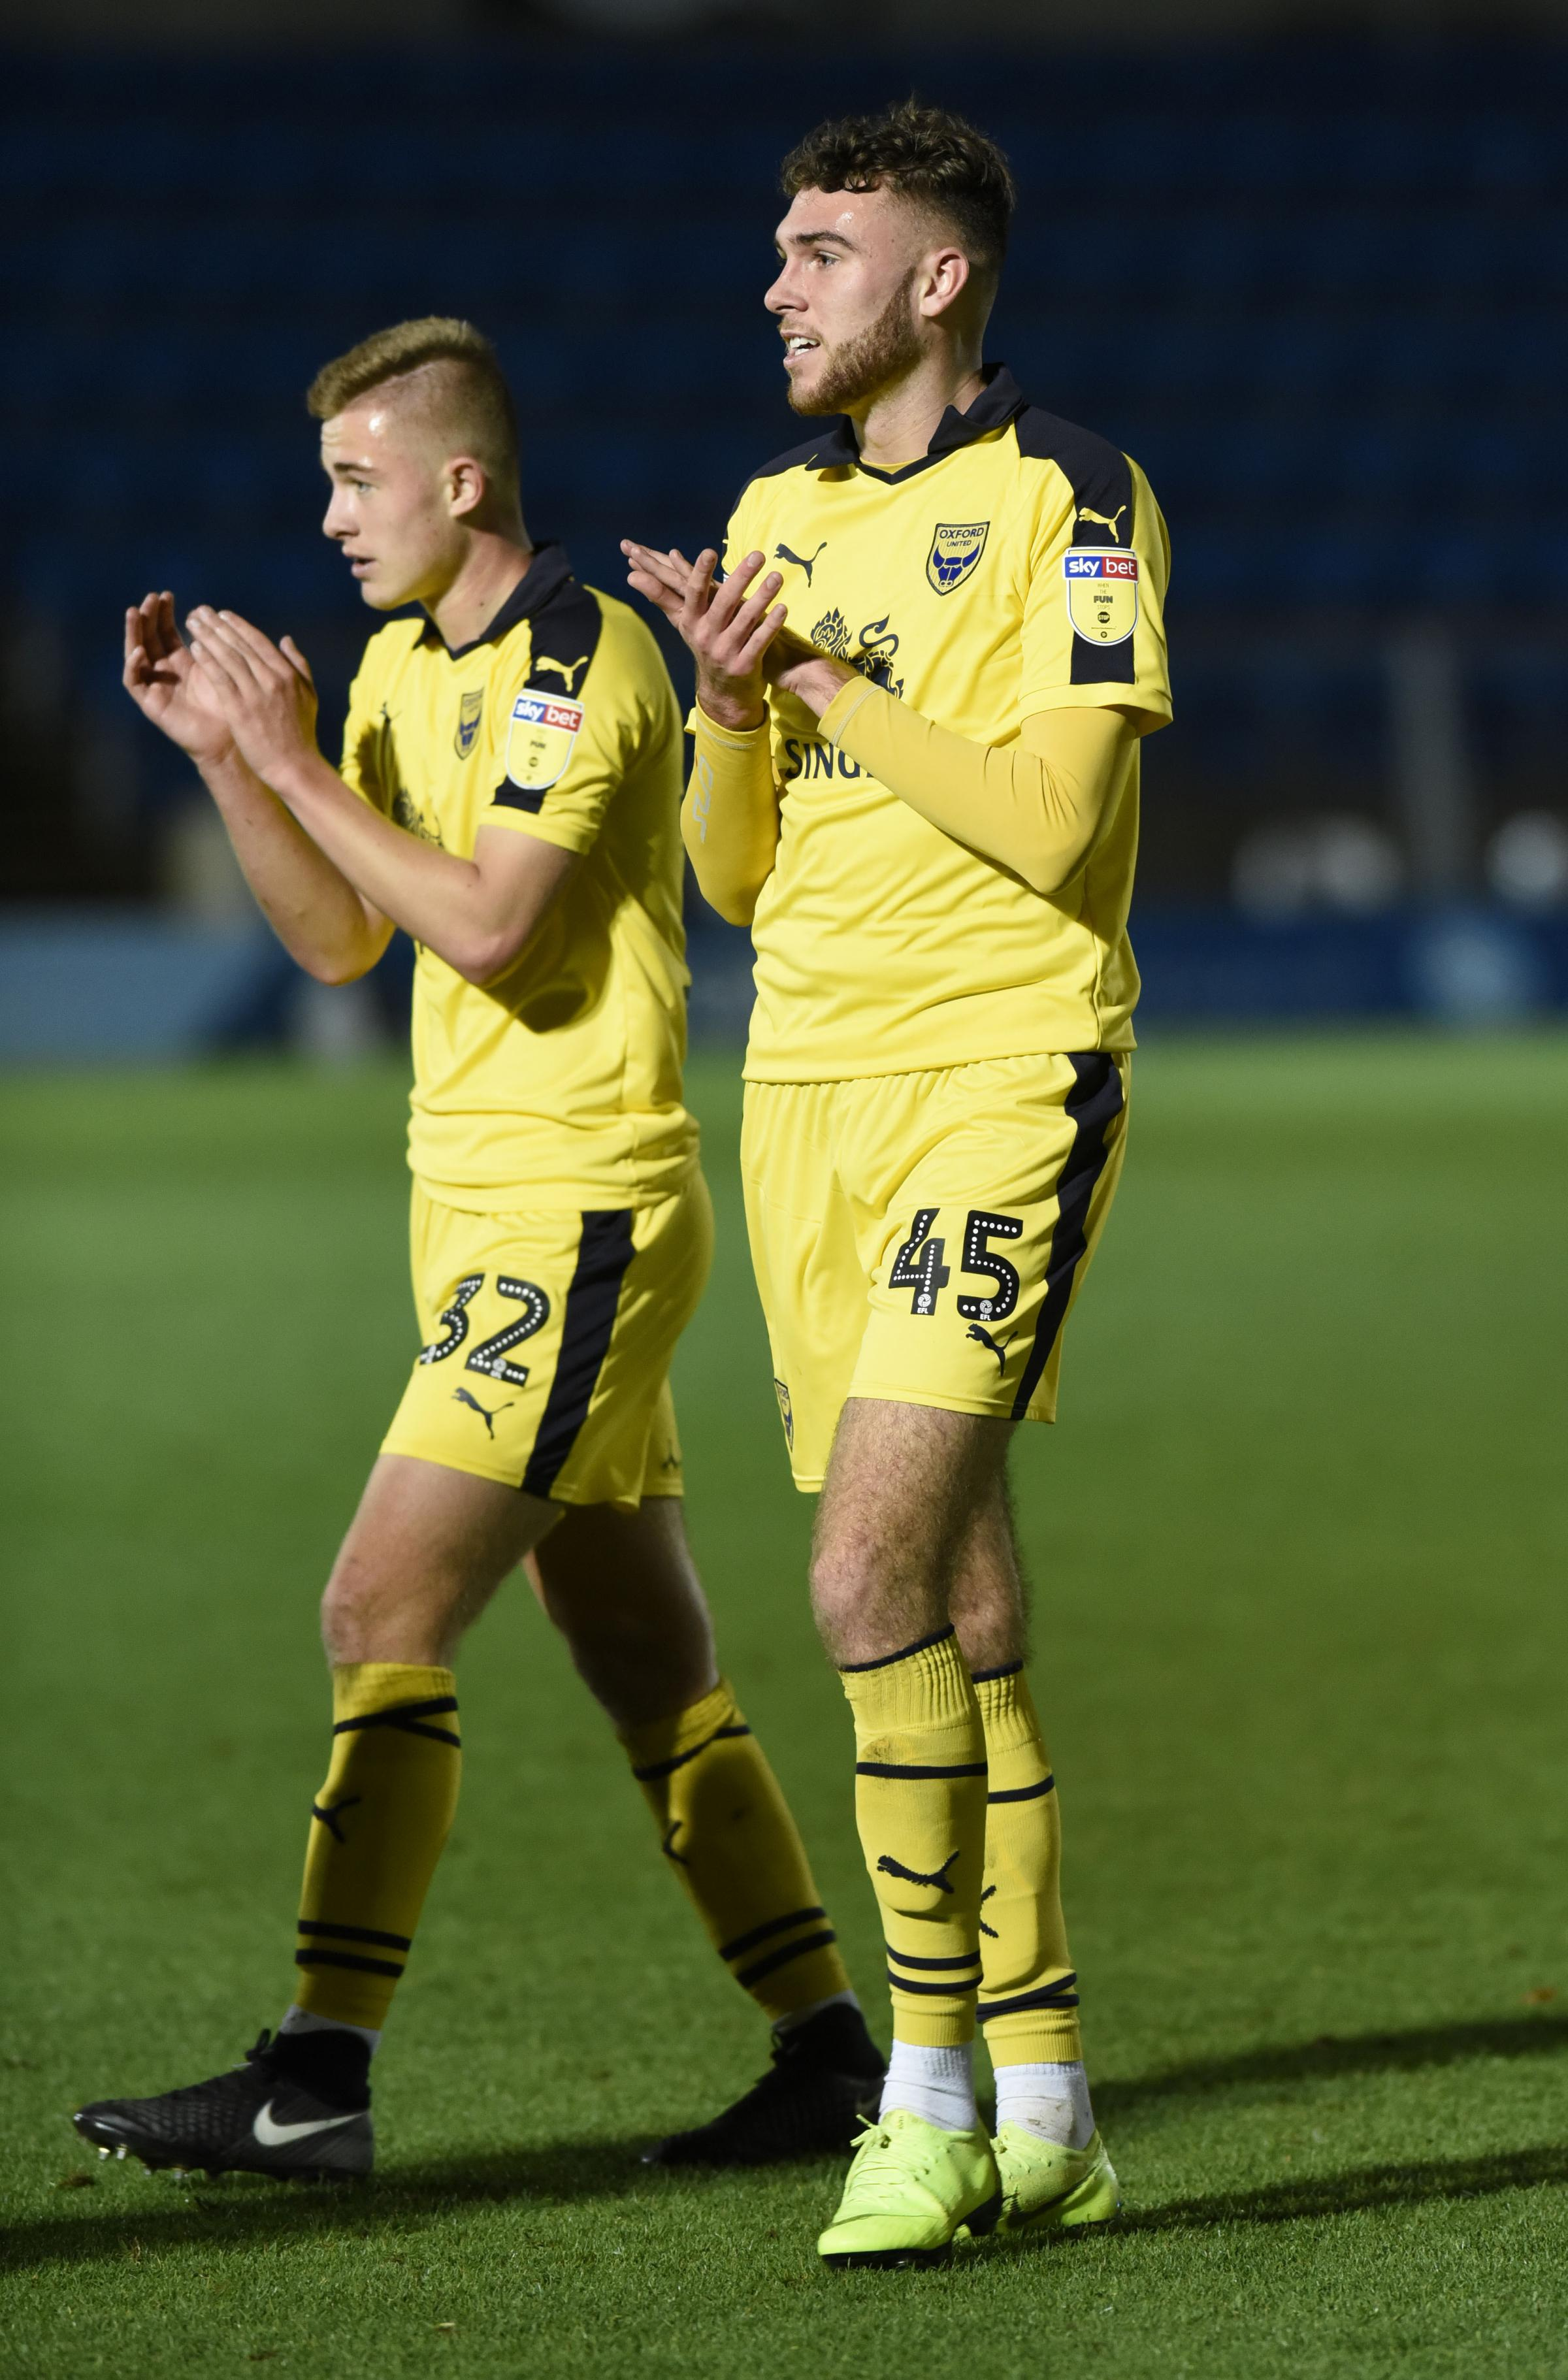 Aaron Heap (left) and Harvey Bradbury applaud the Oxford United supporters after making their senior debuts in the win at Wycombe Wanderers on Tuesday night  Picture: David Fleming